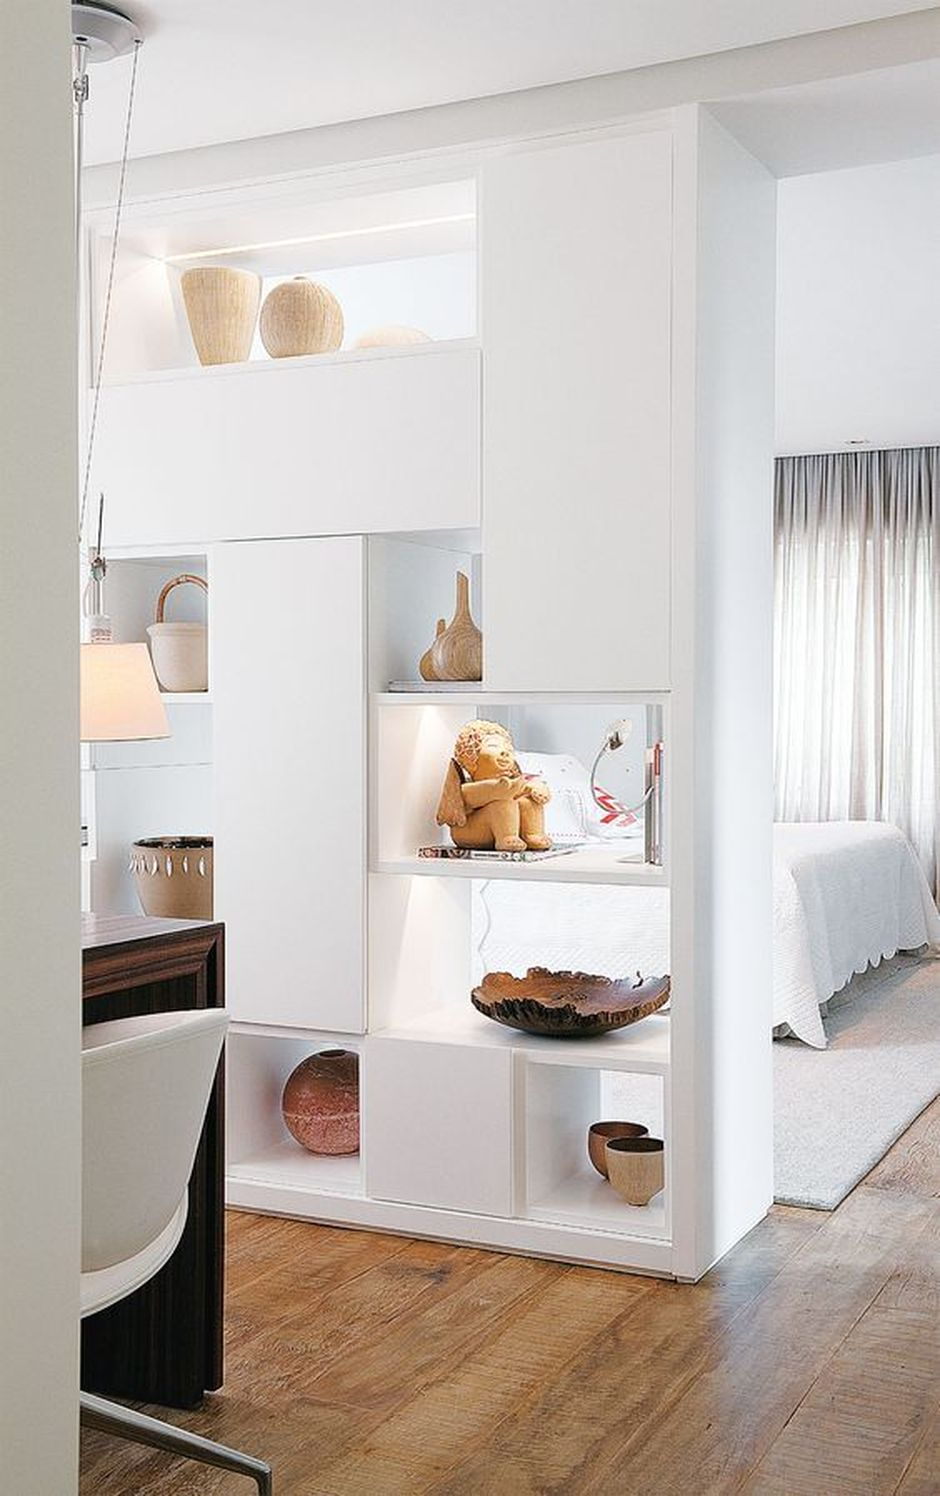 90 Inspiring Room Dividers and Separator Design 4